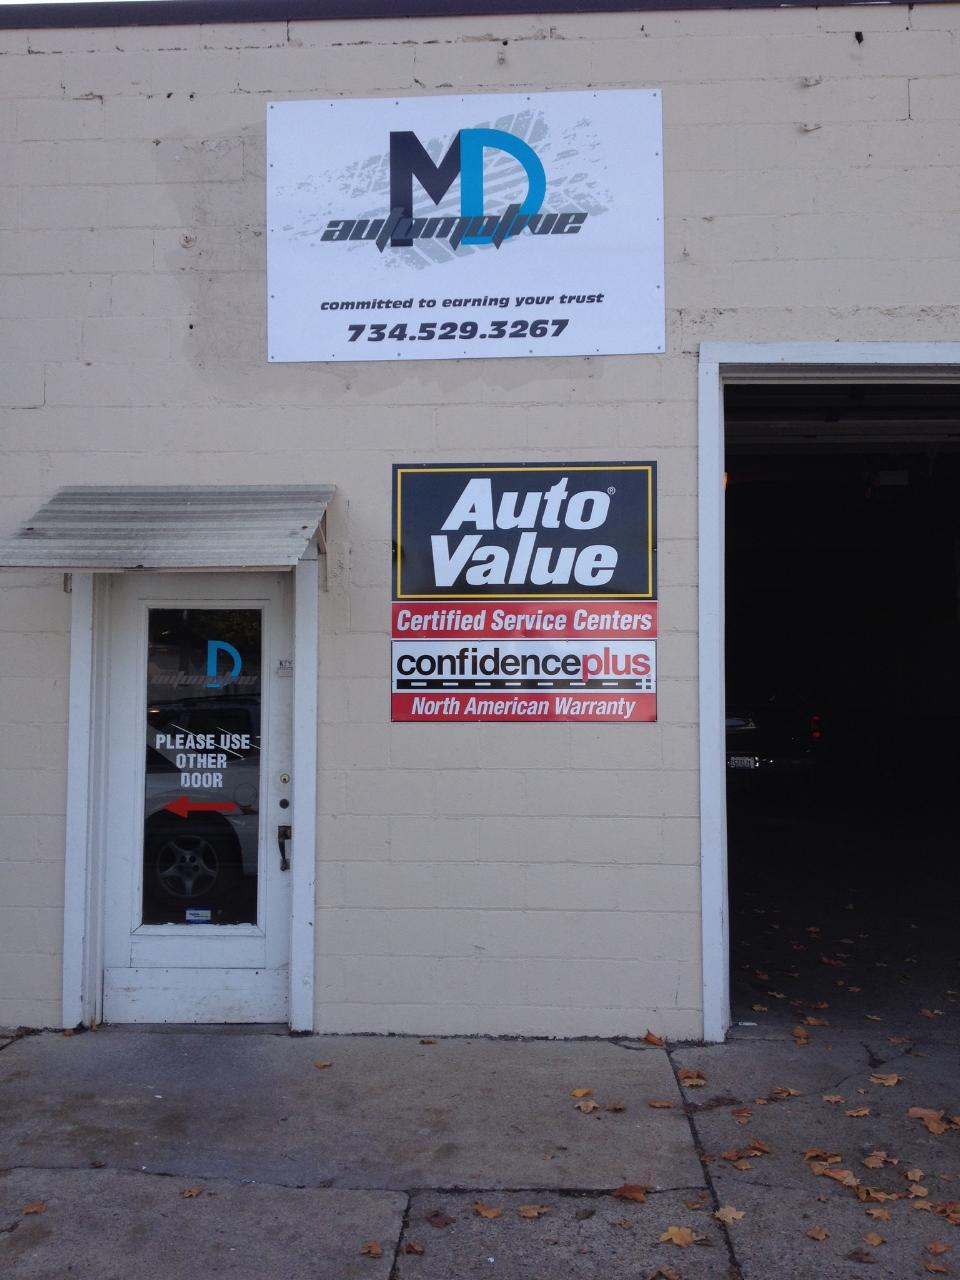 Dundee Mi Md Automotive Auto Value